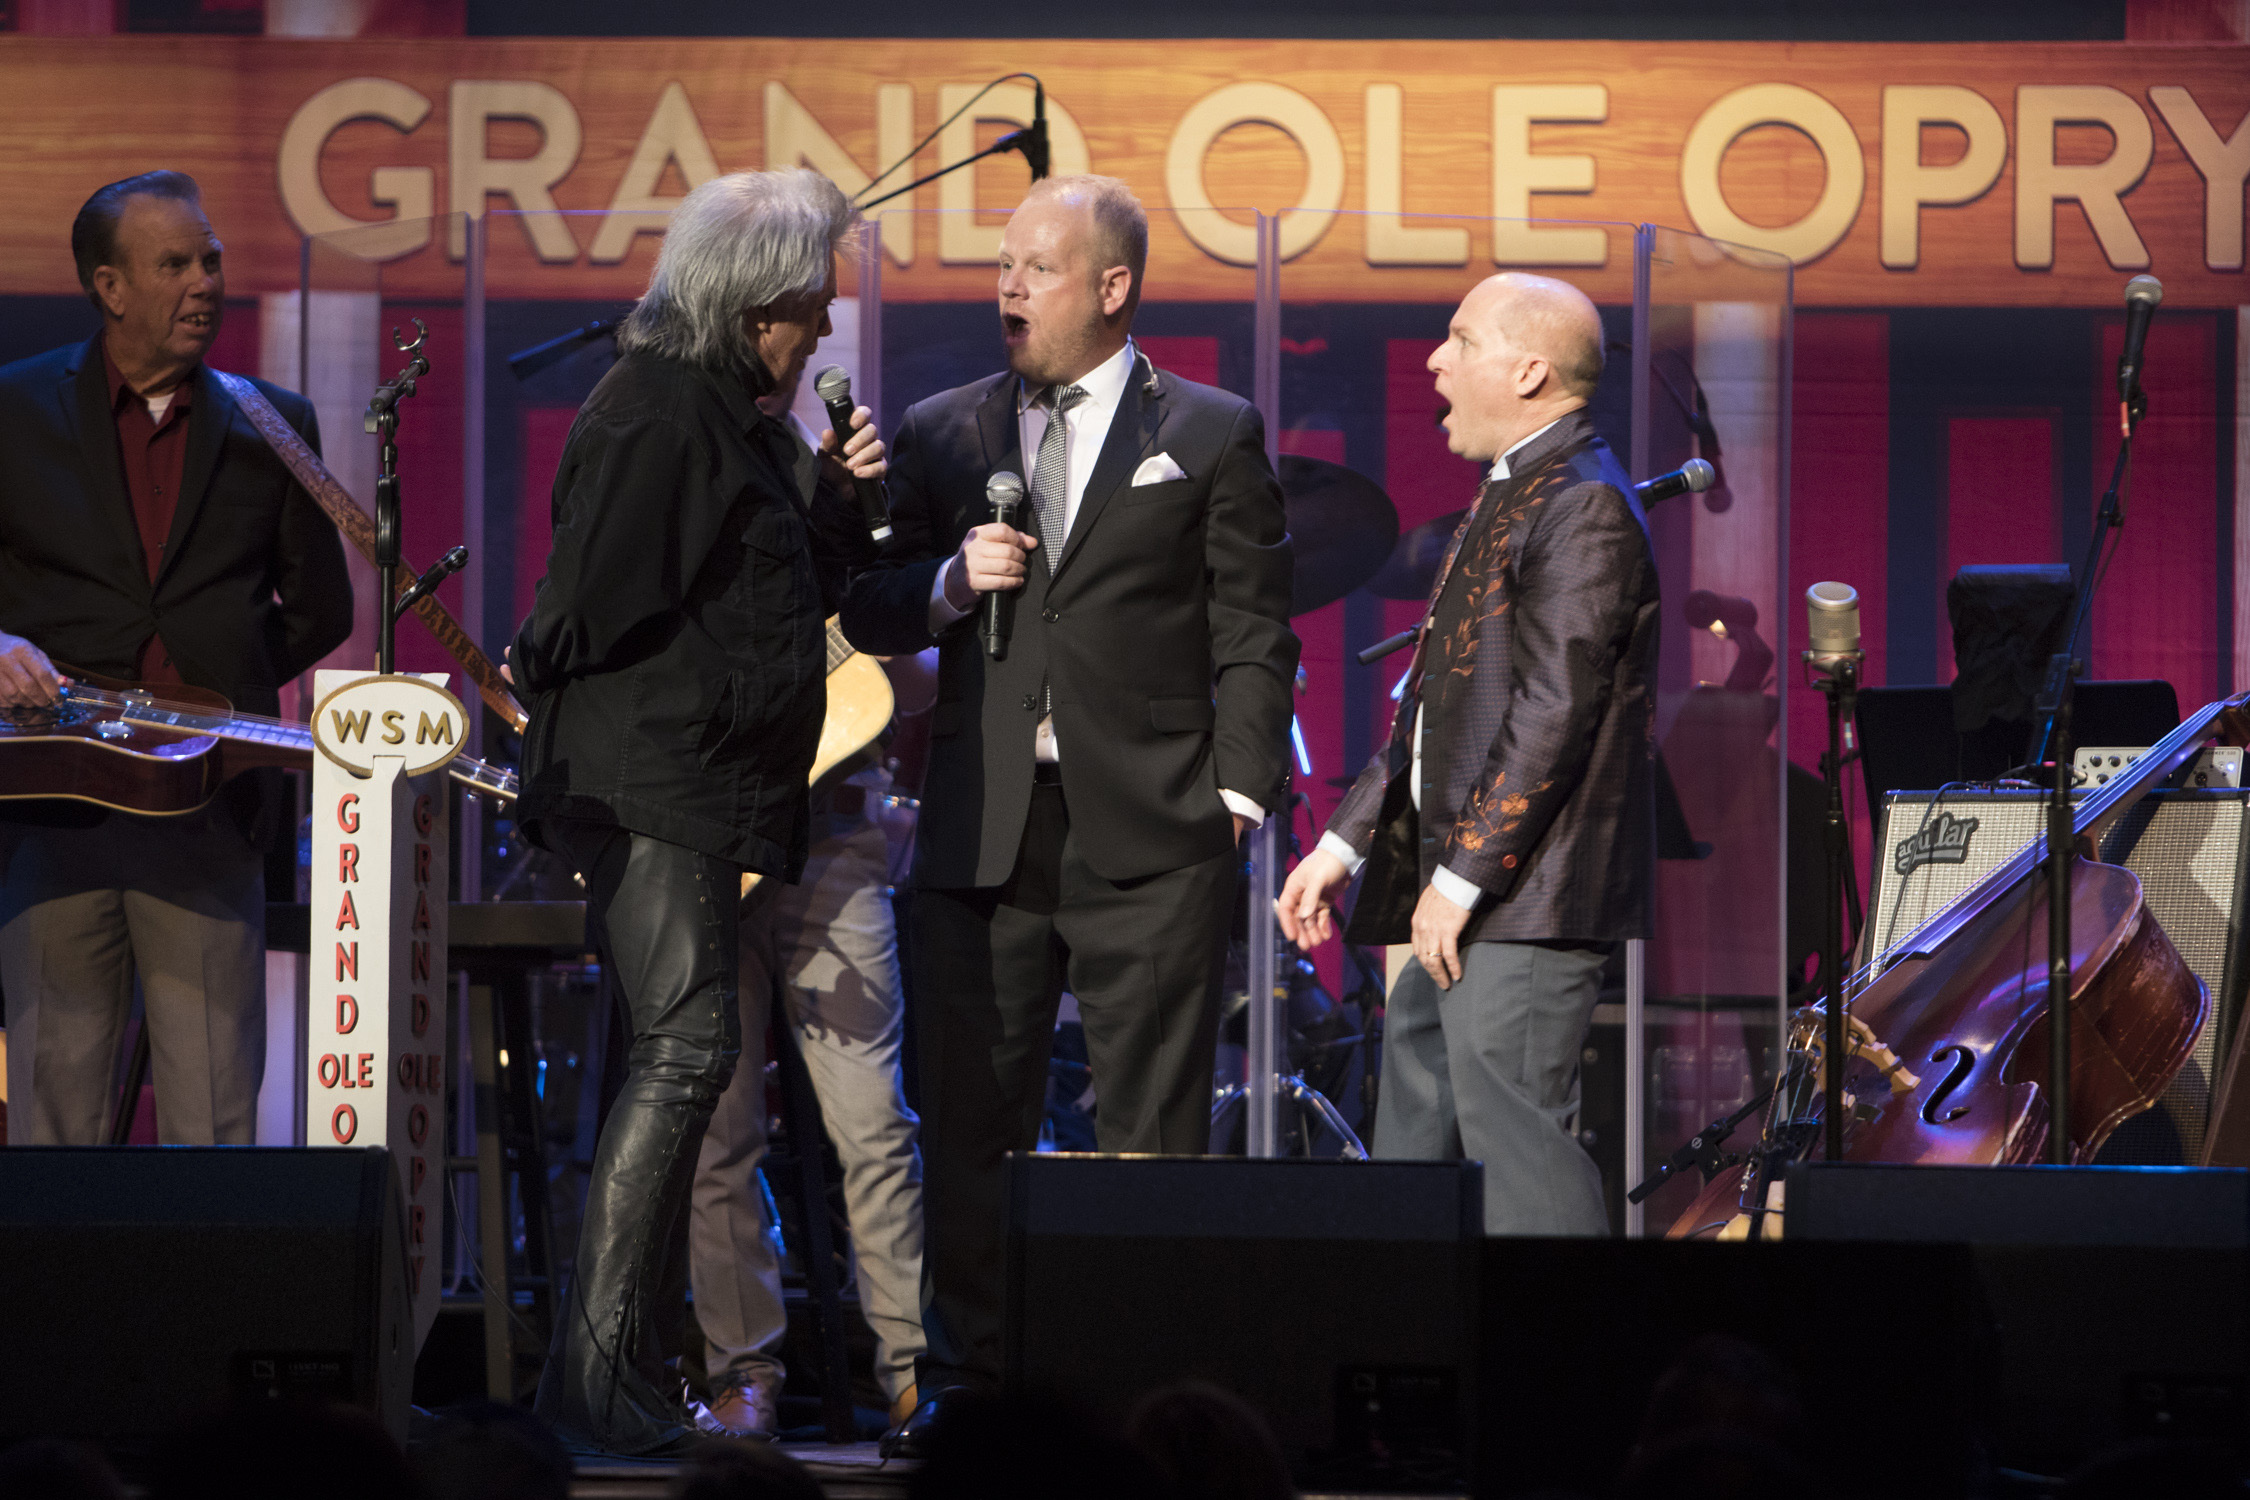 Dailey Vincent Invited To Join Grand Ole Opry Sounds Like